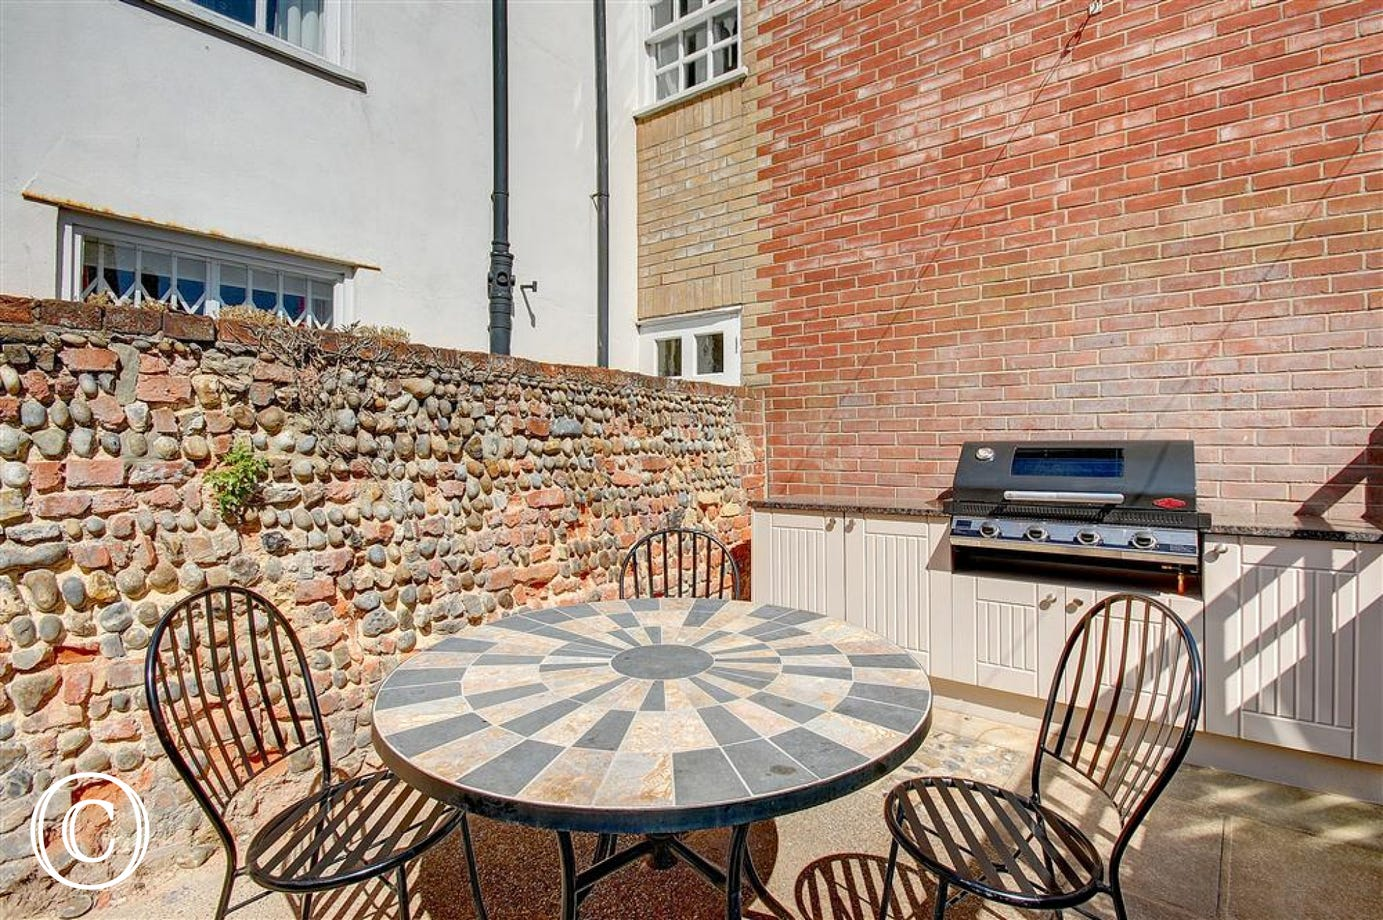 Enjoy this pretty courtyard garden with table and chairs and fitted BBQ kitchen so you can enjoy the Southwold sun.